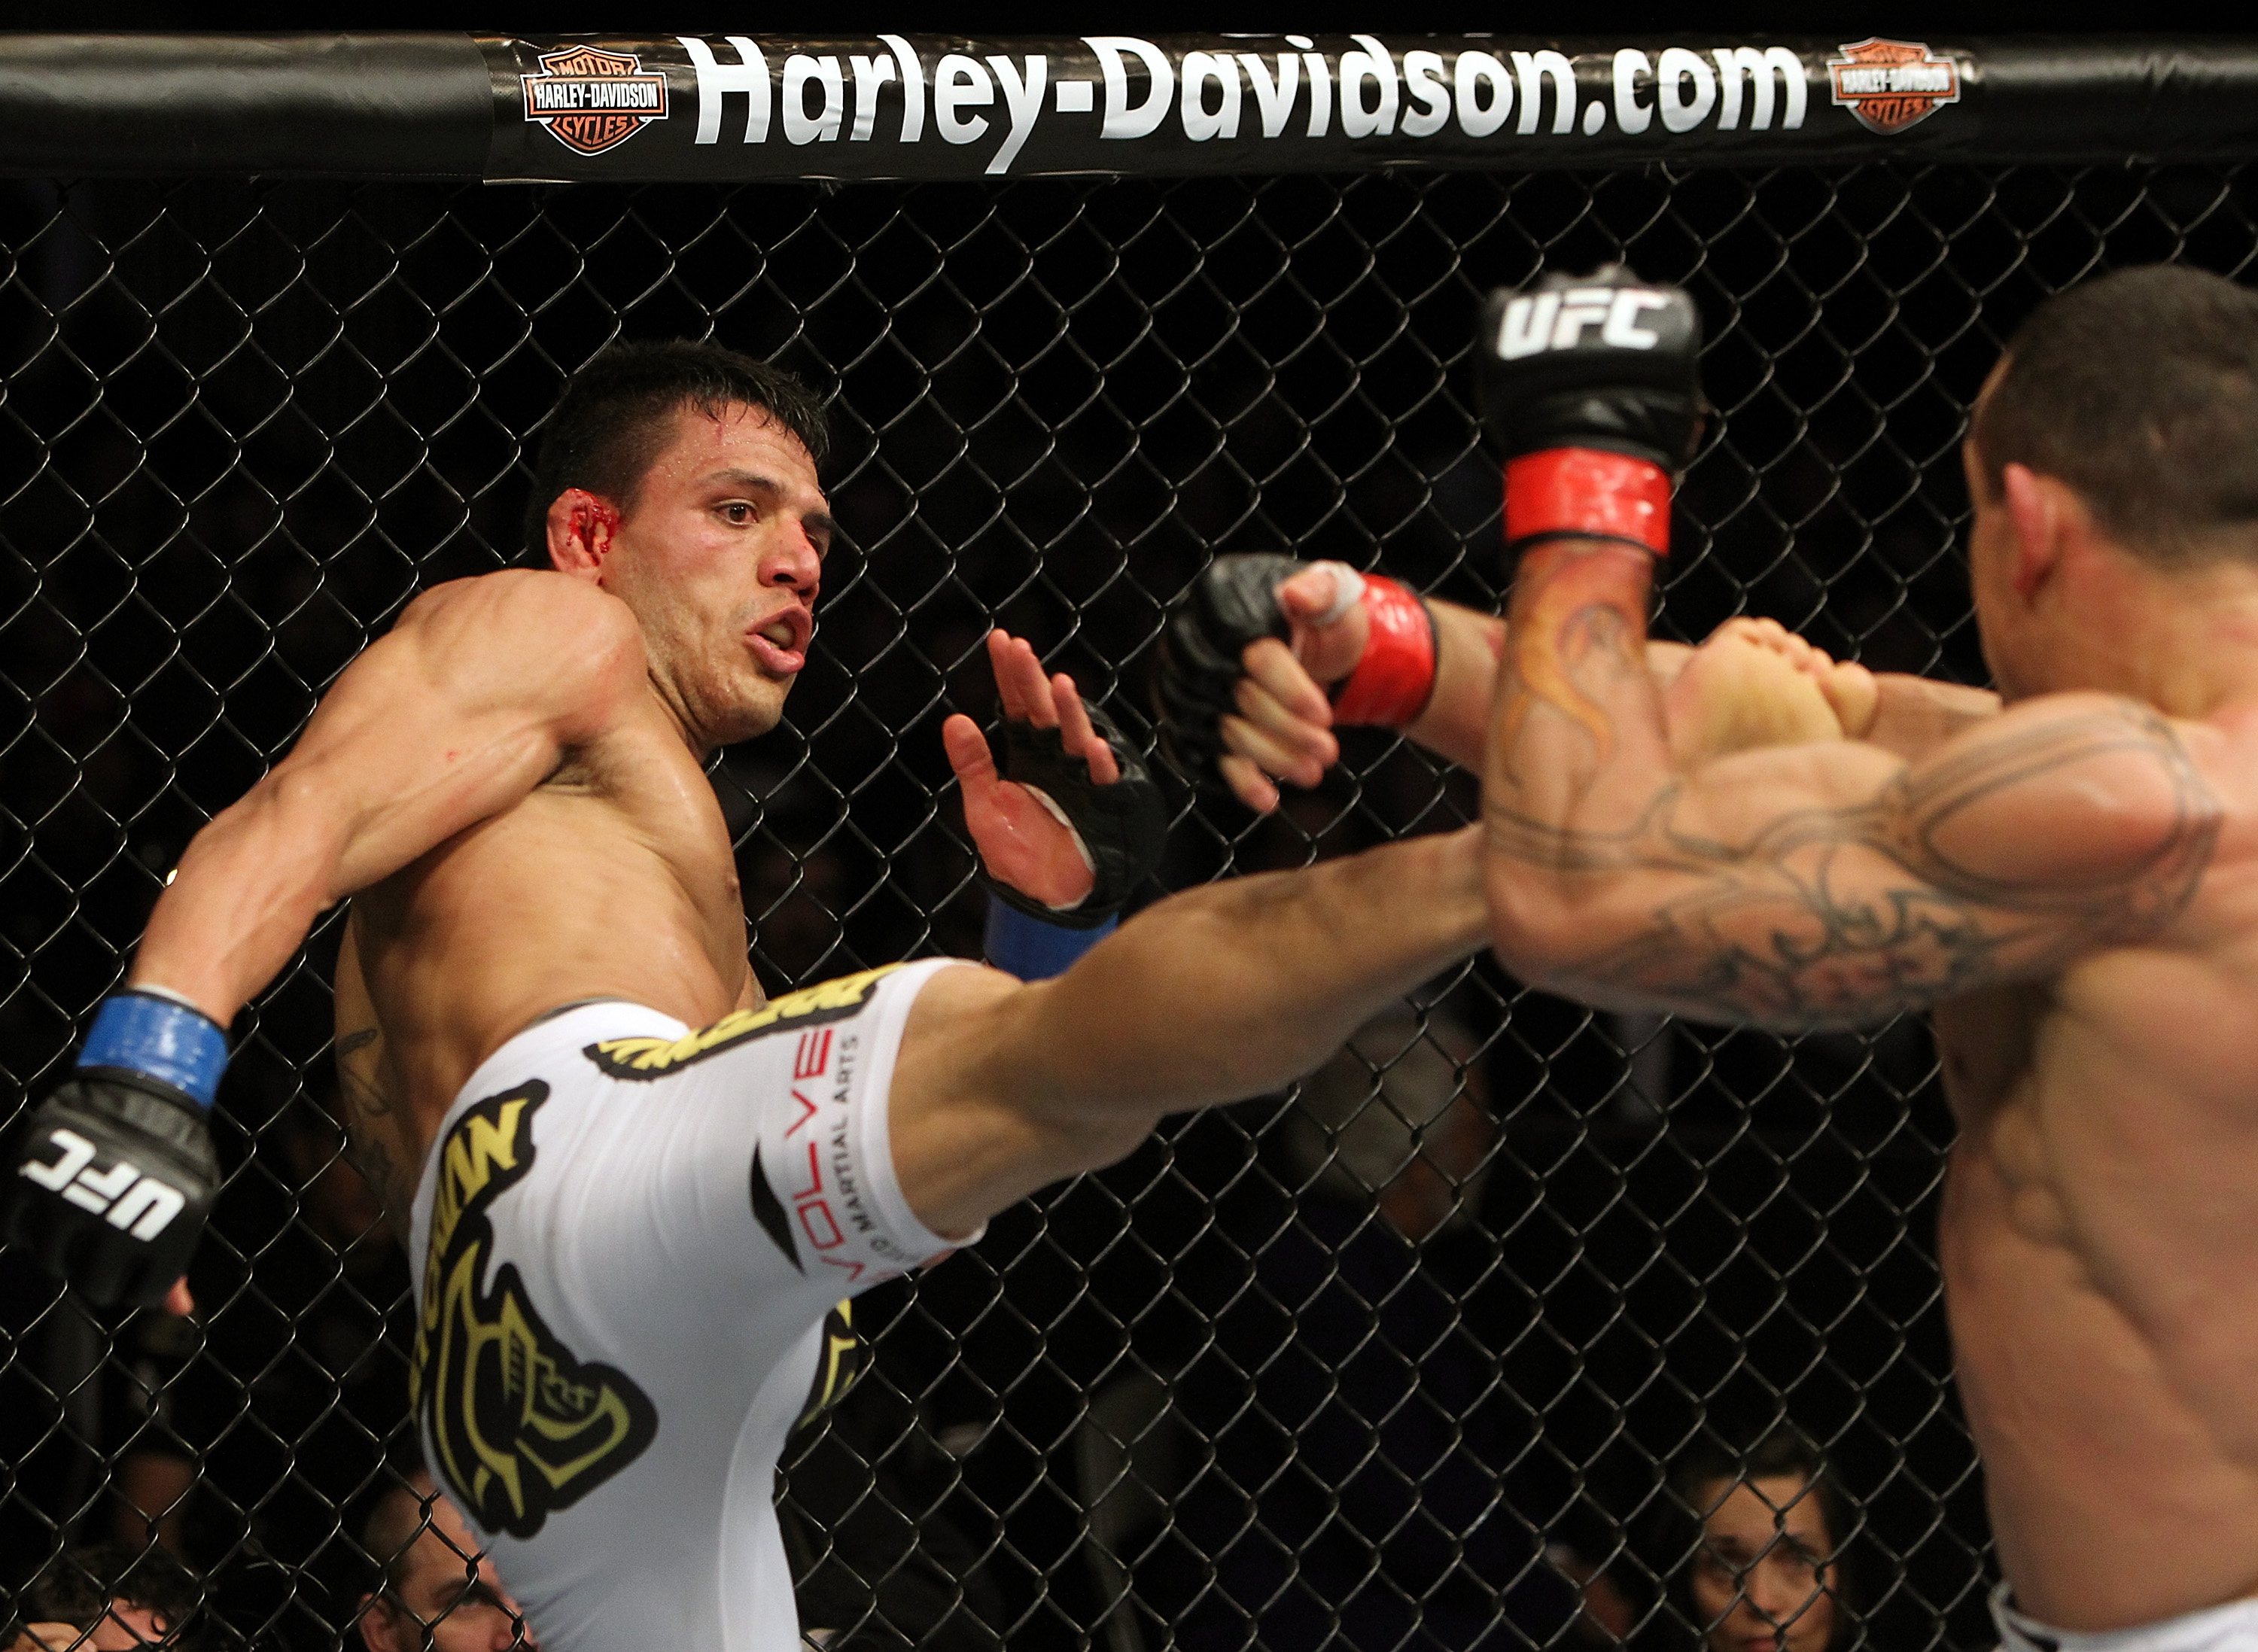 SAN JOSE, CA - NOVEMBER 19: (L-R) Rafael dos Anjos kicks Gleison Tibau during an UFC Lightweight bout at the HP Pavillion in San Jose, California on November 19, 2011 in San Jose, California.  (Photo by Josh Hedges/Zuffa LLC/Zuffa LLC via Getty Images)